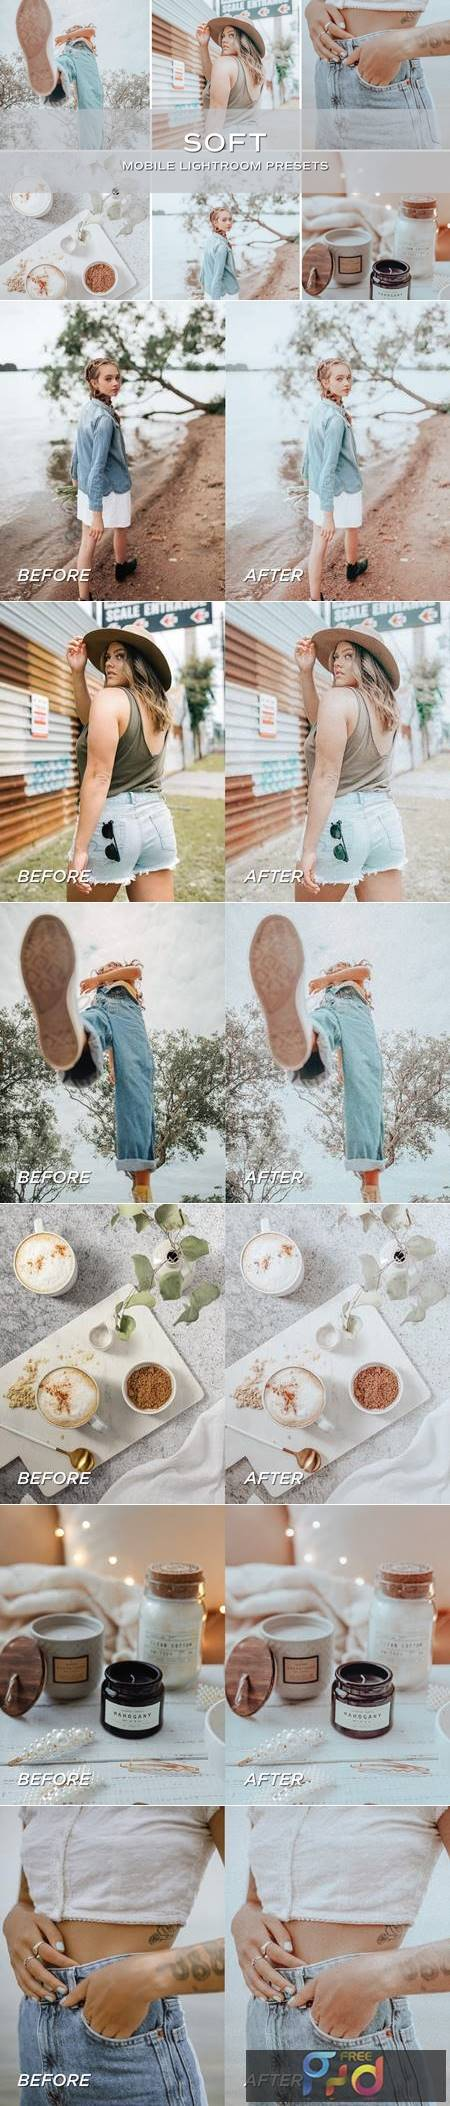 5 Soft Lightroom Presets 5701758 1